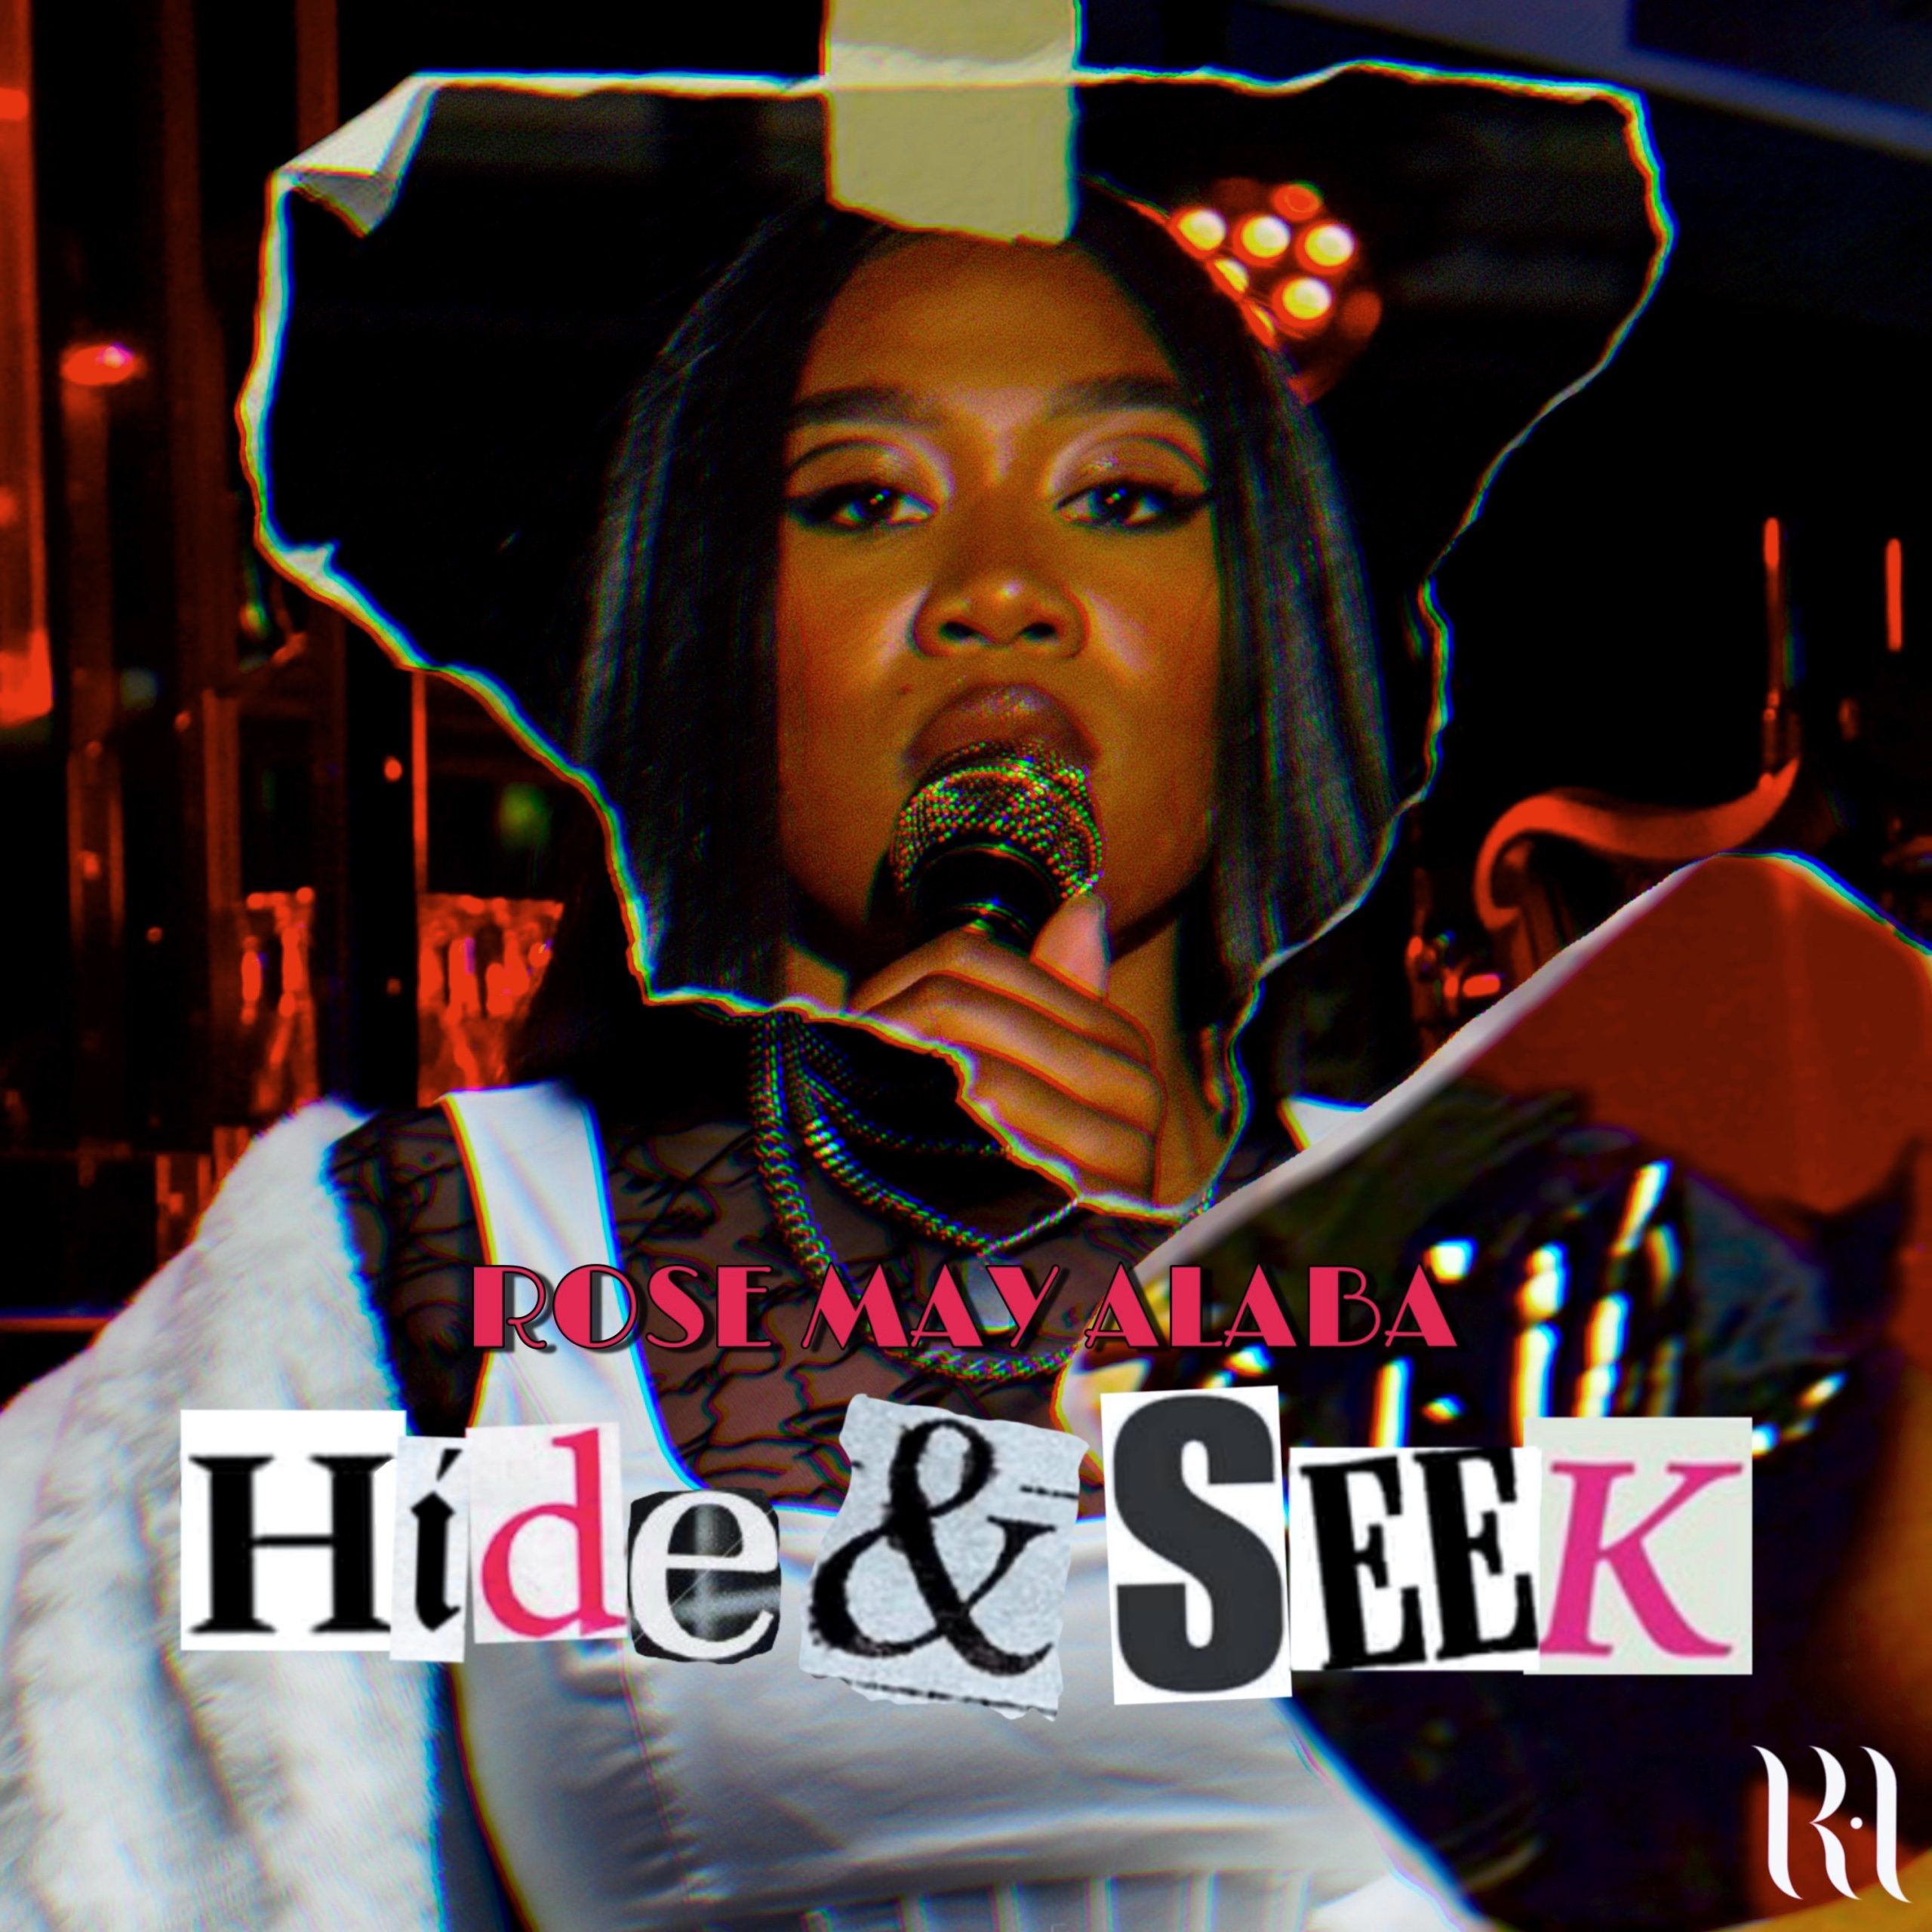 HideSeek Cover scaled